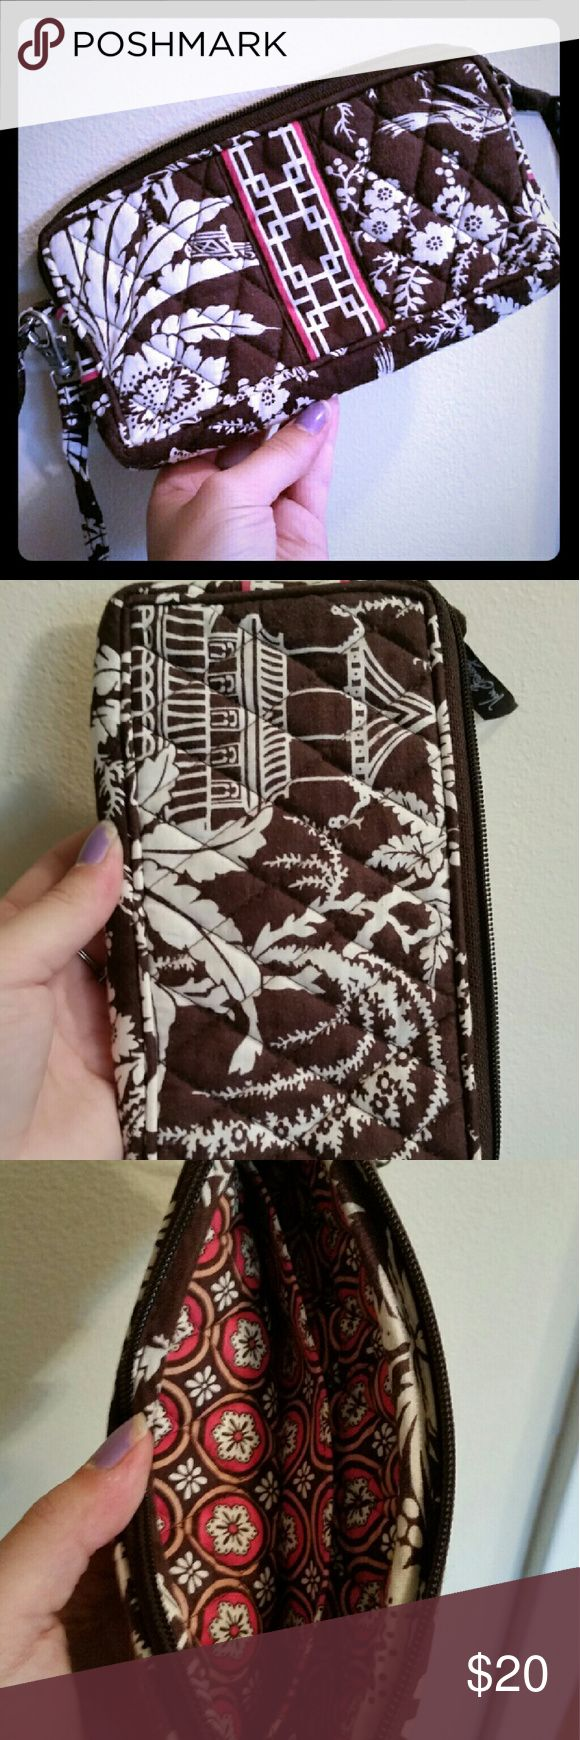 Vera Bradley Wristlet Perfect wristlet for holding cash, coins, ID's, cards, phone, whatever! Zipper shut, comes with clip on handle Vera Bradley Bags Clutches & Wristlets